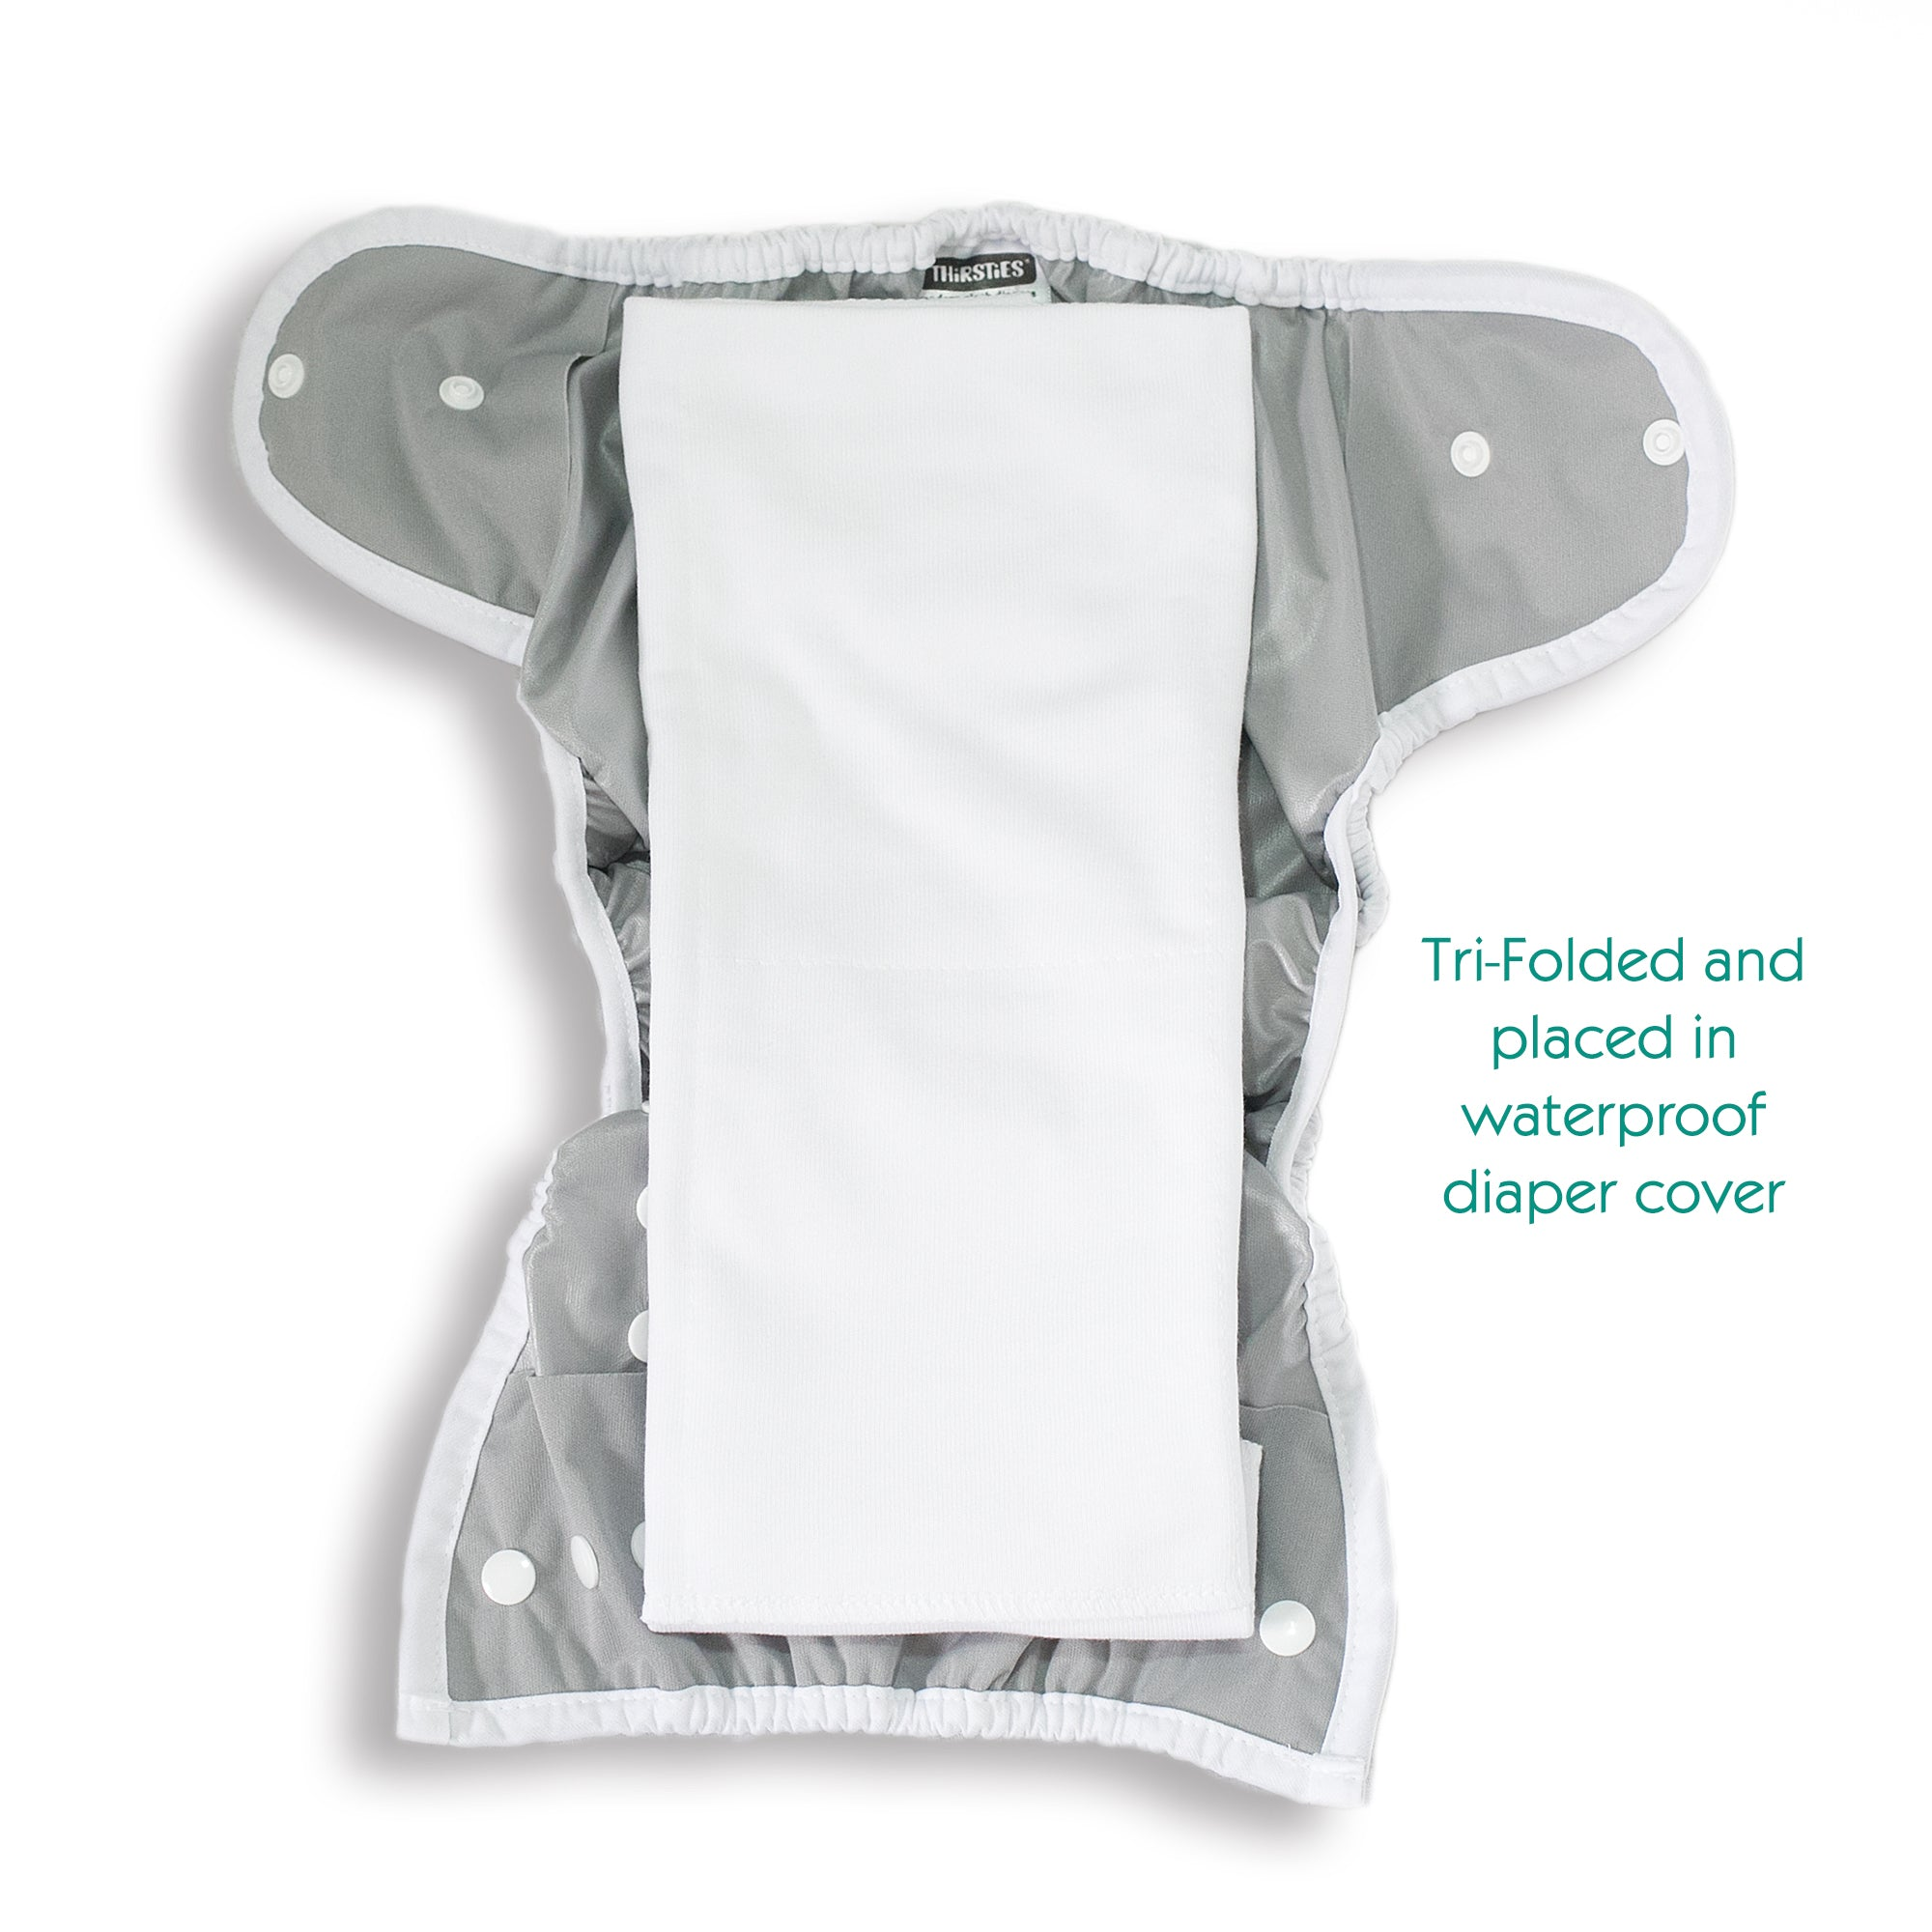 Chaotai Baby Safe Crib Bumper Pads for Standard Cribs Machine Washable Padded Crib Liner Thick Padding for Nursery Bed Breathable Soft Fabric Protector